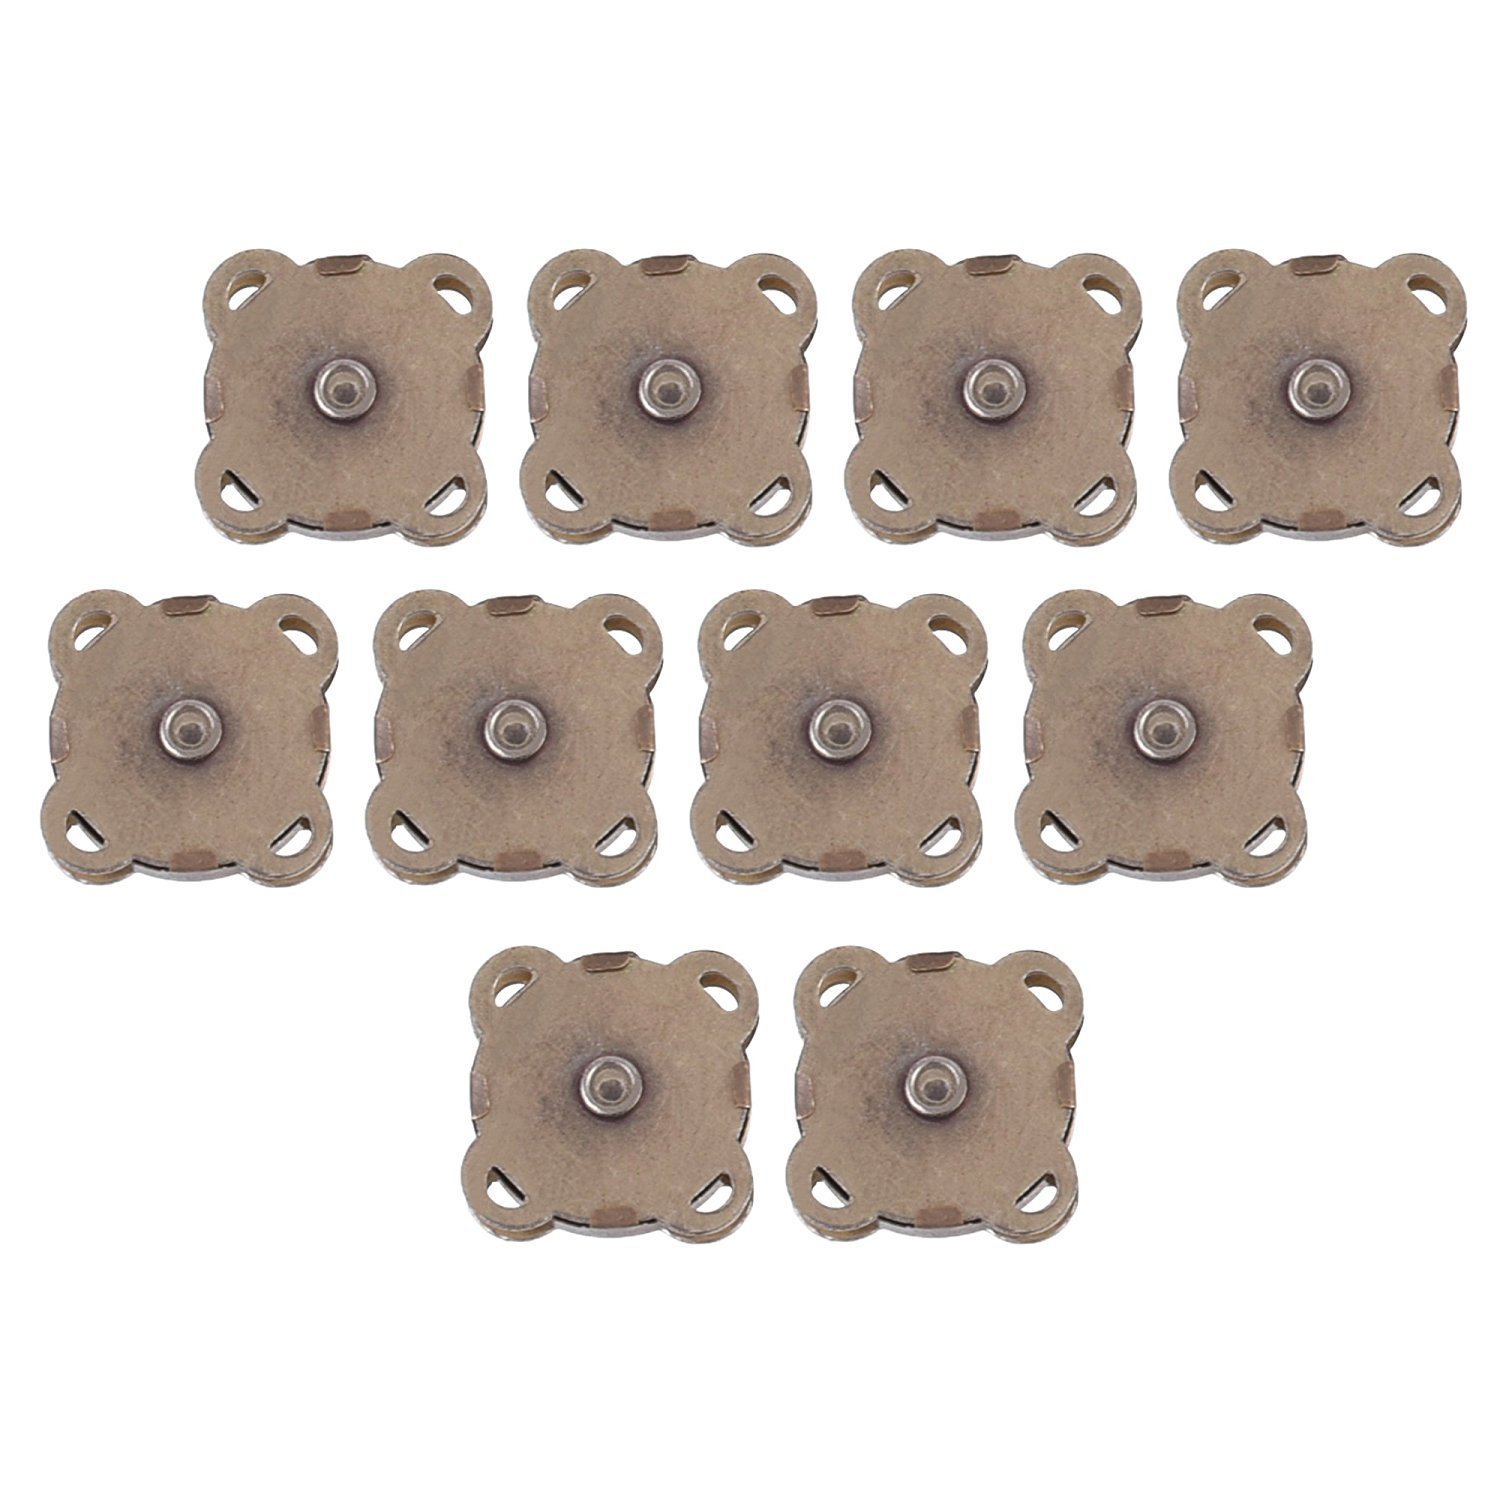 Clasps Snaps Bronze Great for Sewing Craft Clothing Bag BCP 10 Sets 18mm Sew in Magnetic Bag Clasps Plum Blossom Bag Button